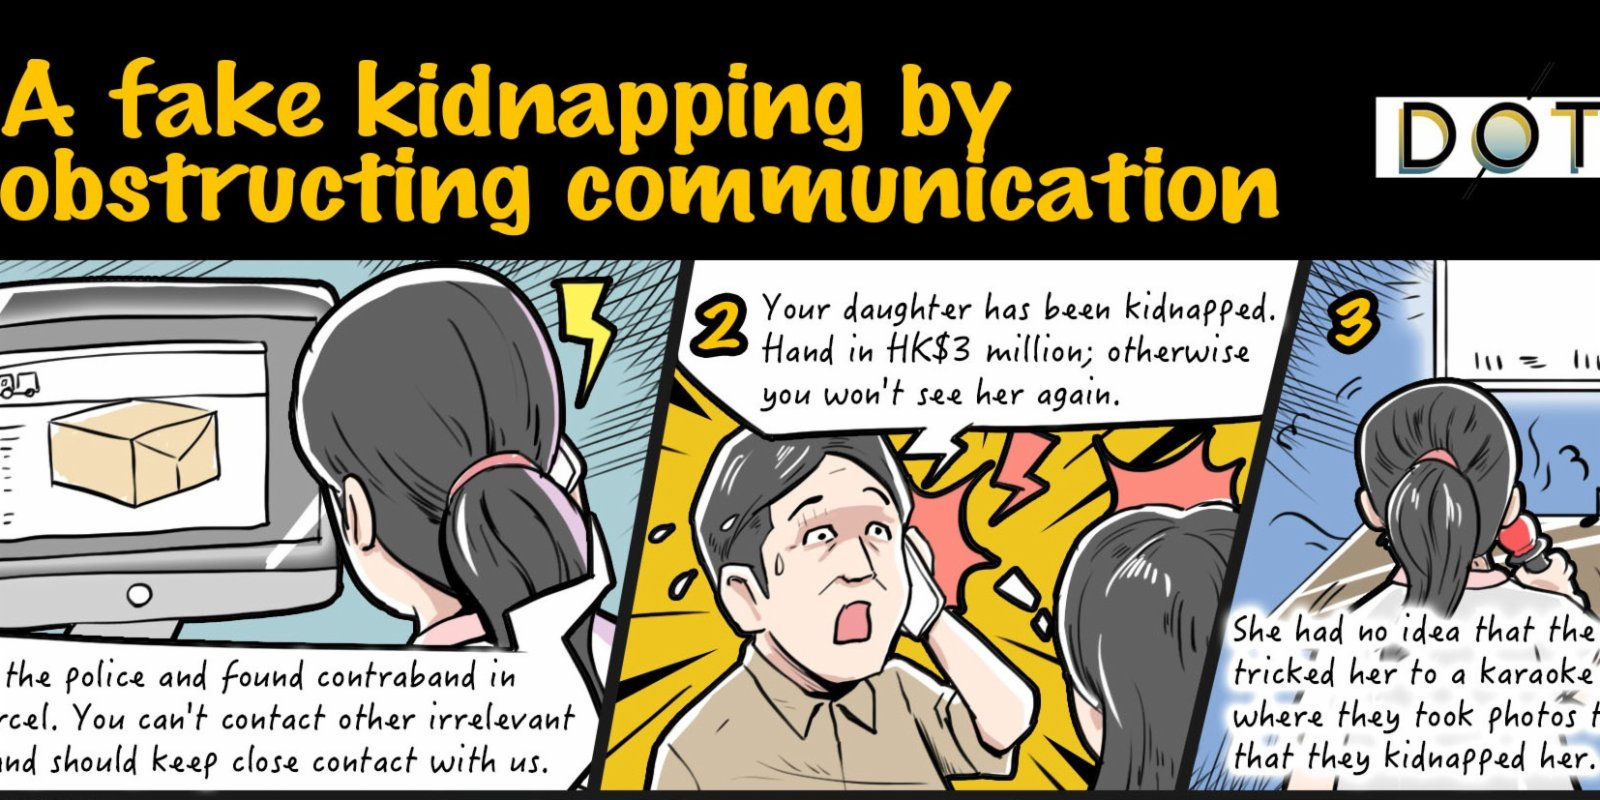 Exclusive Case |A fake kidnapping by obstructing communication